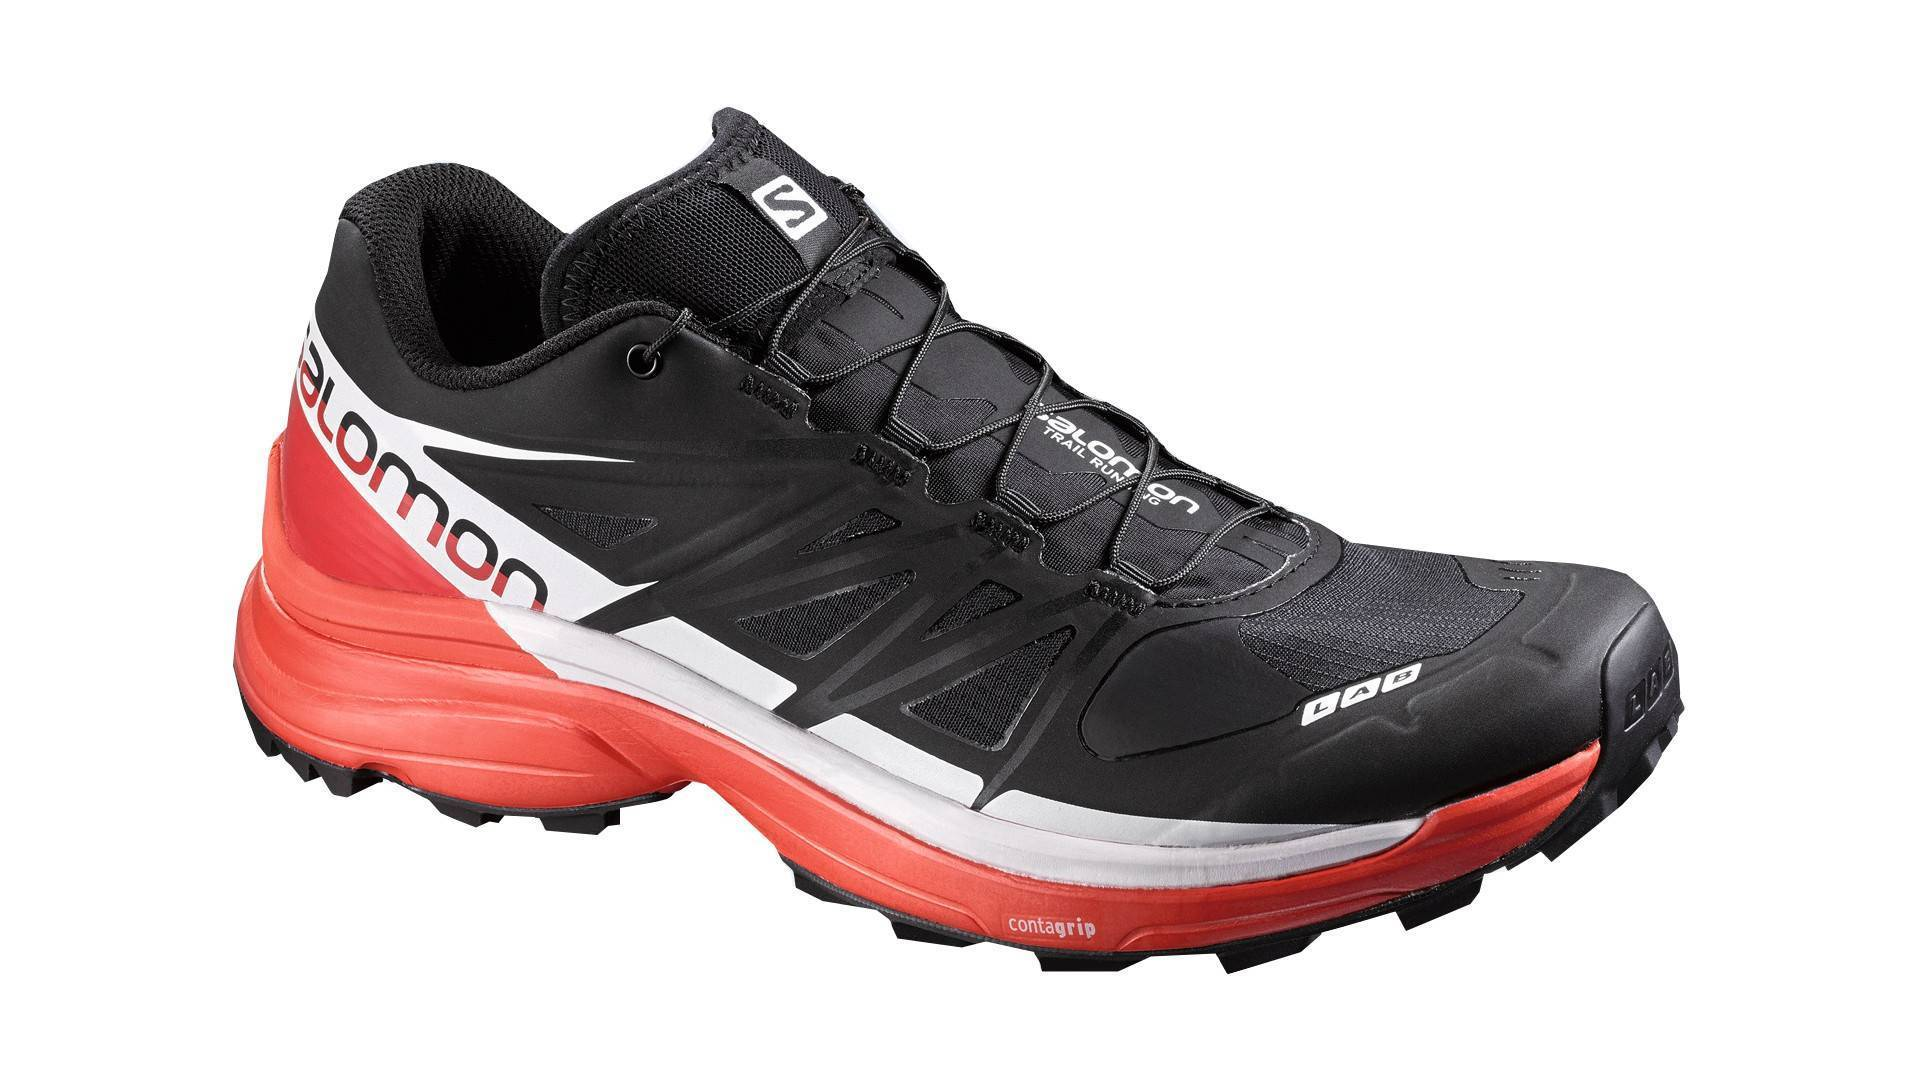 c038c9835 Беговые кроссовки для XC SALOMON SHOES S-LAB WINGS 8 SG BLACK/RD/WH ...